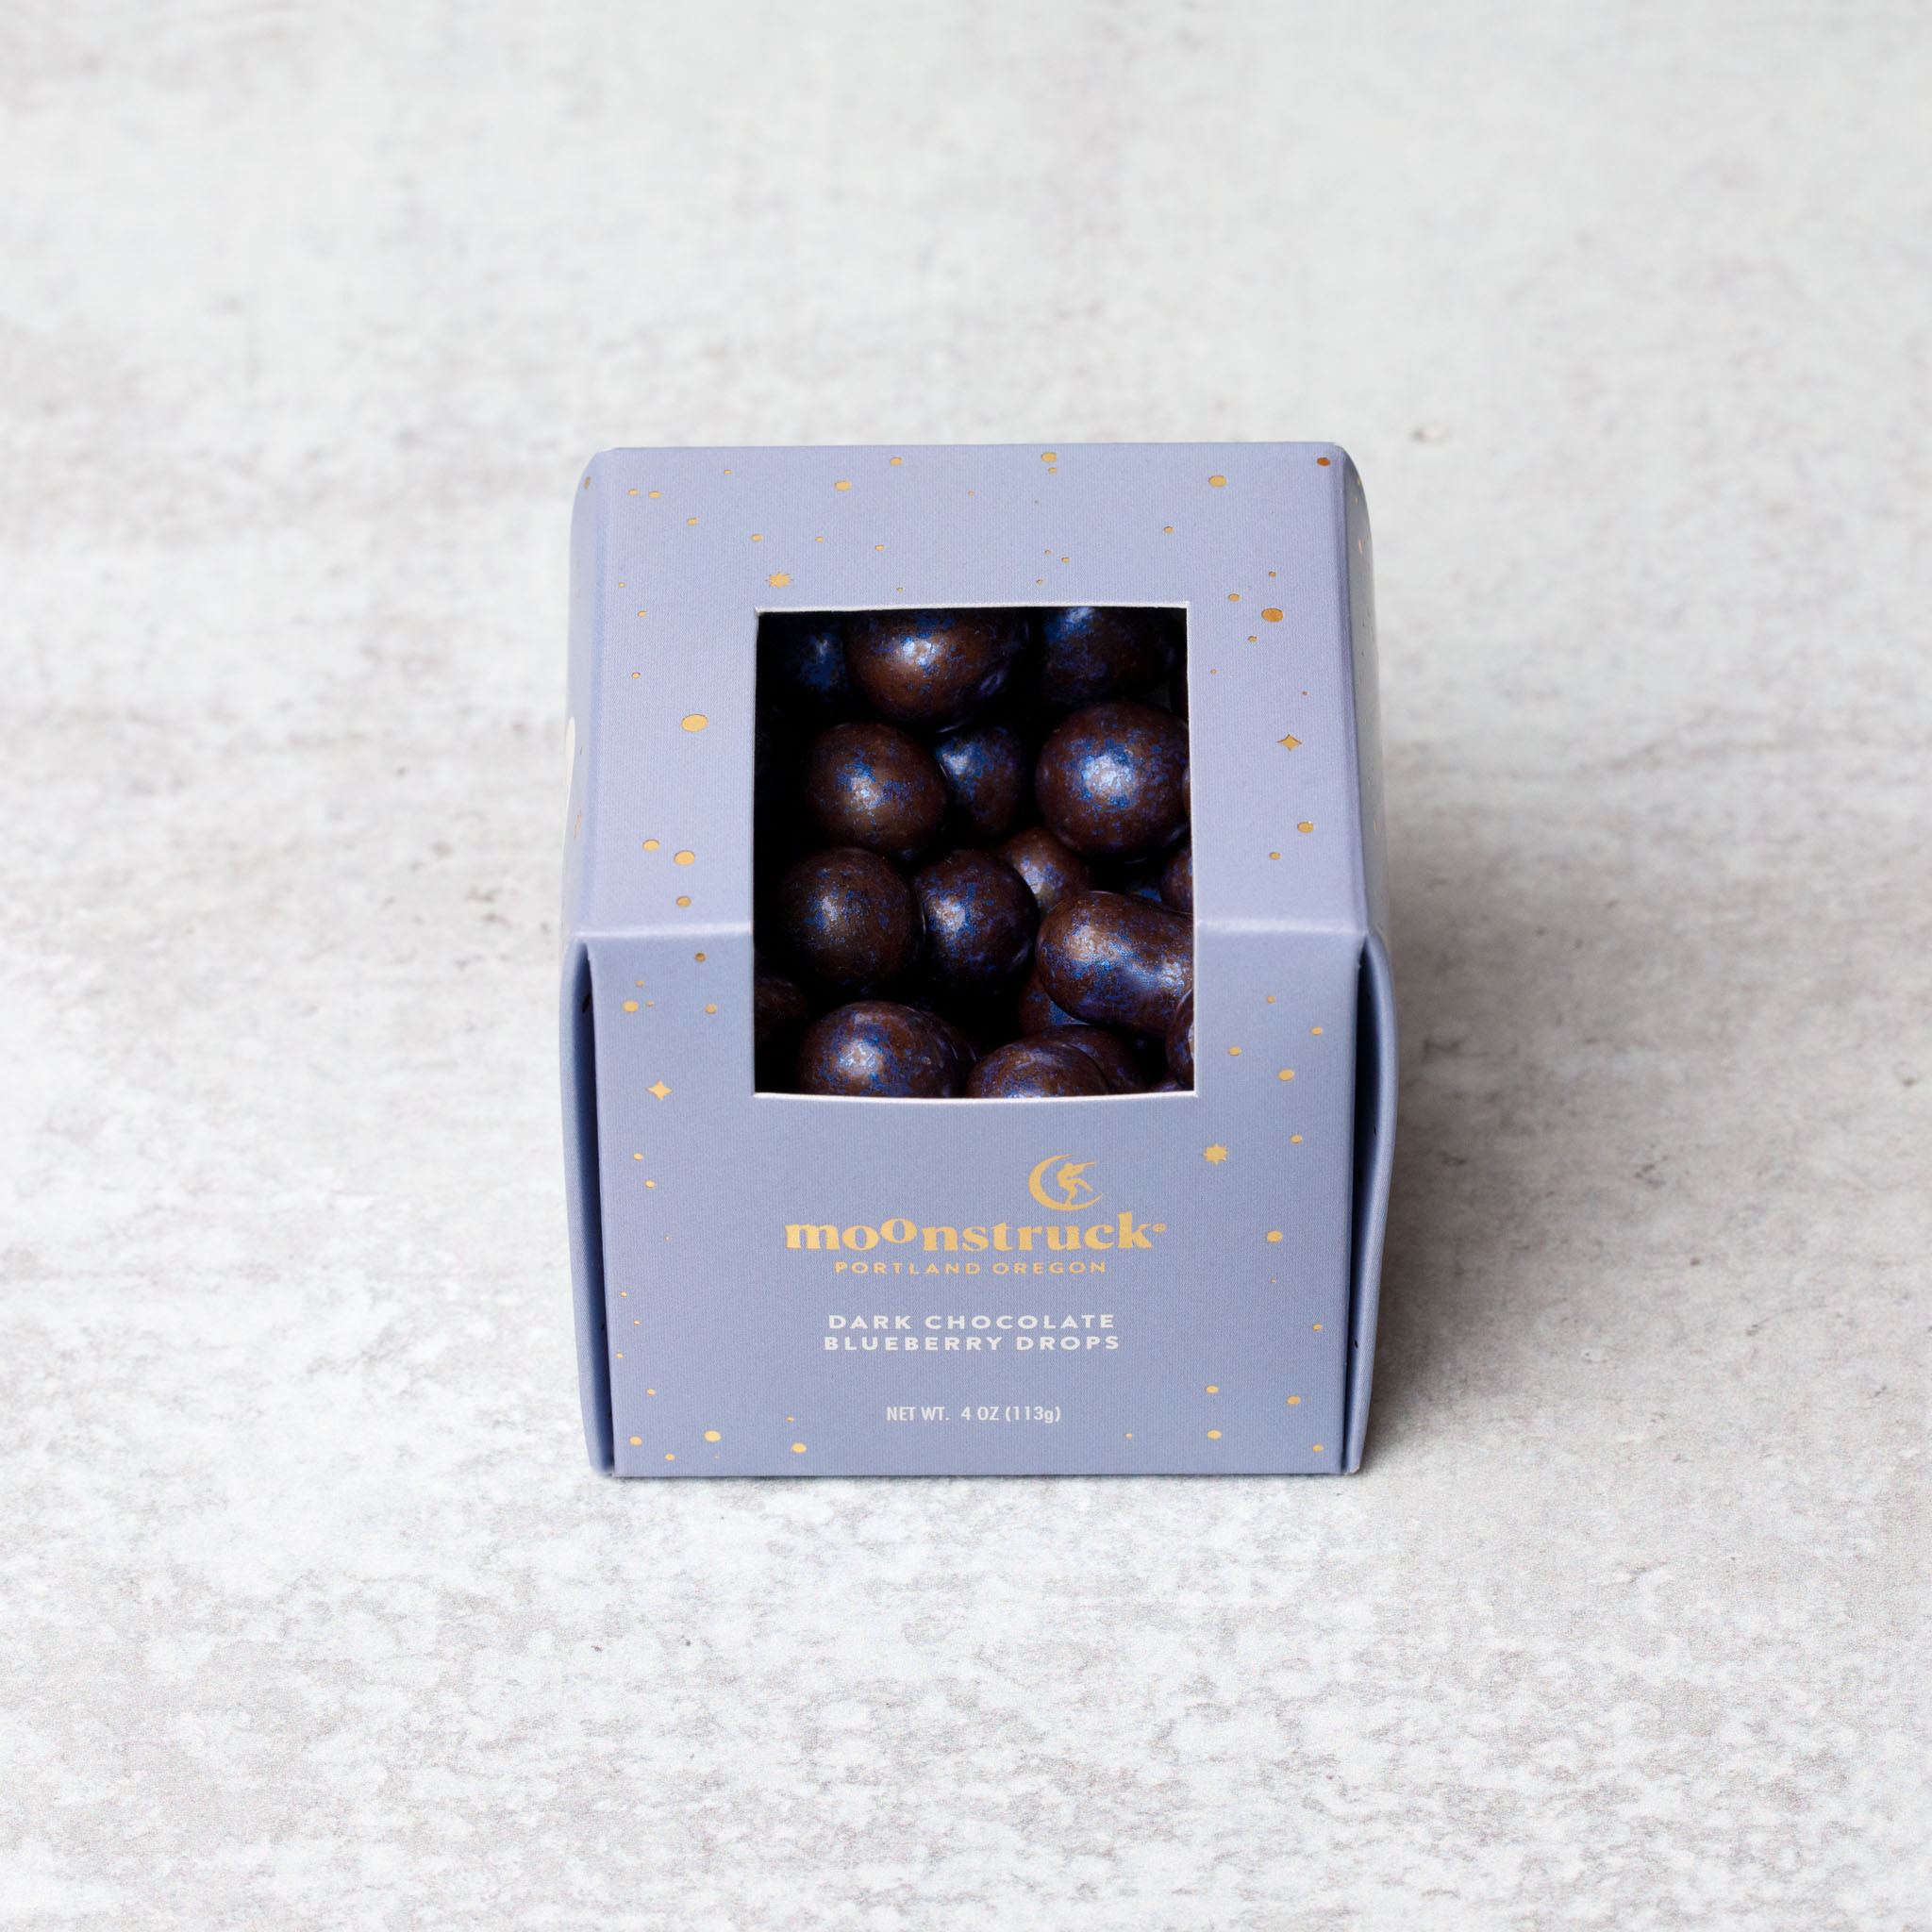 Dark Chocolate Blueberry Drops